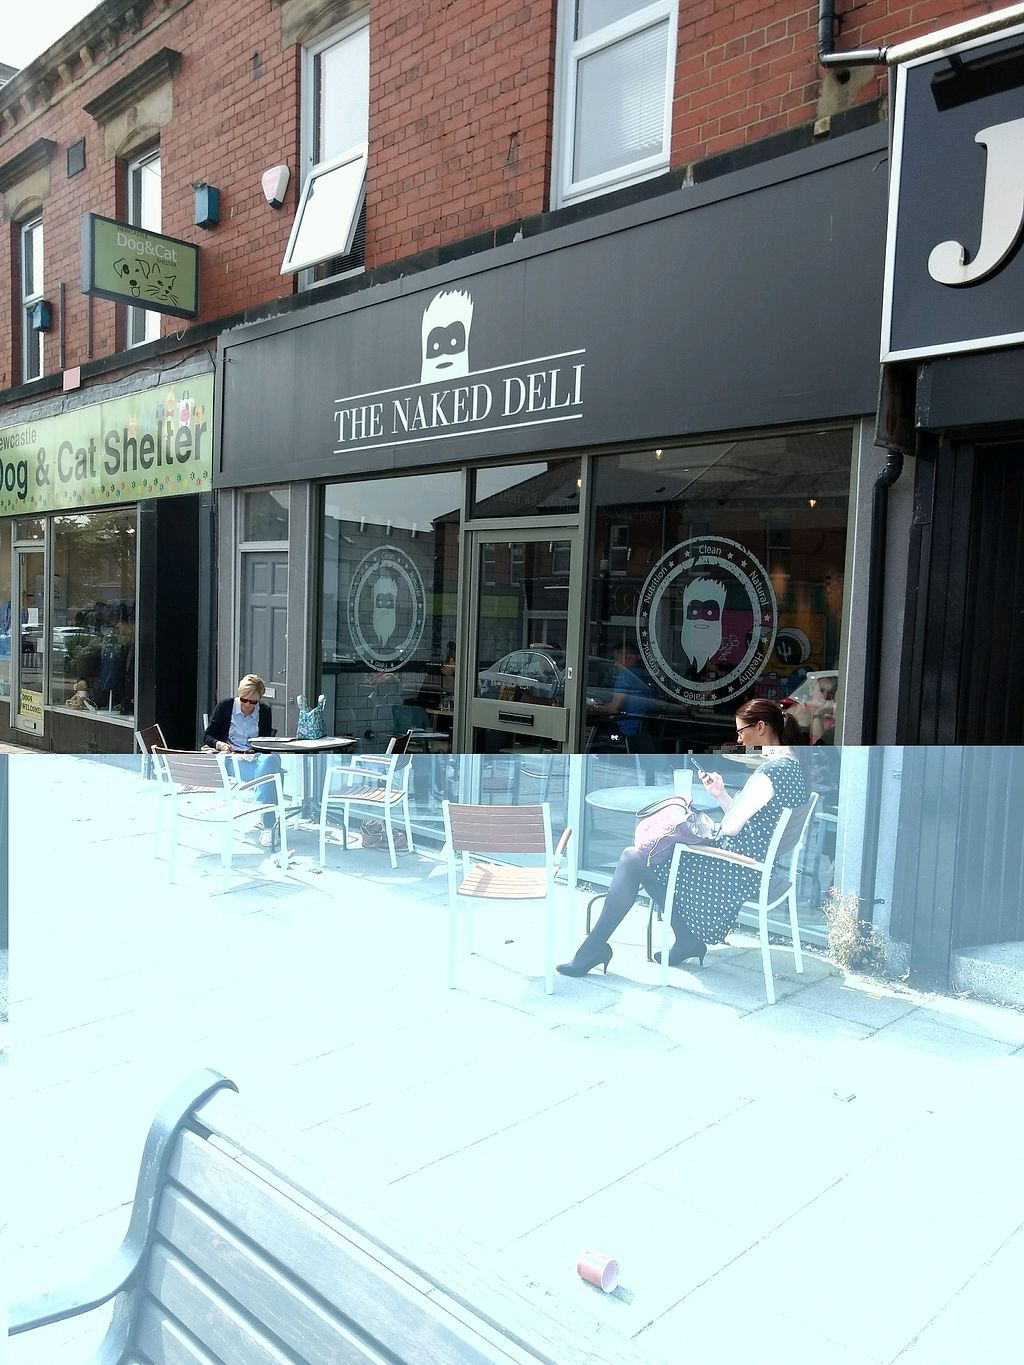 """Photo of The Naked Deli - Heaton  by <a href=""""/members/profile/craigmc"""">craigmc</a> <br/>outside <br/> August 21, 2017  - <a href='/contact/abuse/image/75328/295137'>Report</a>"""